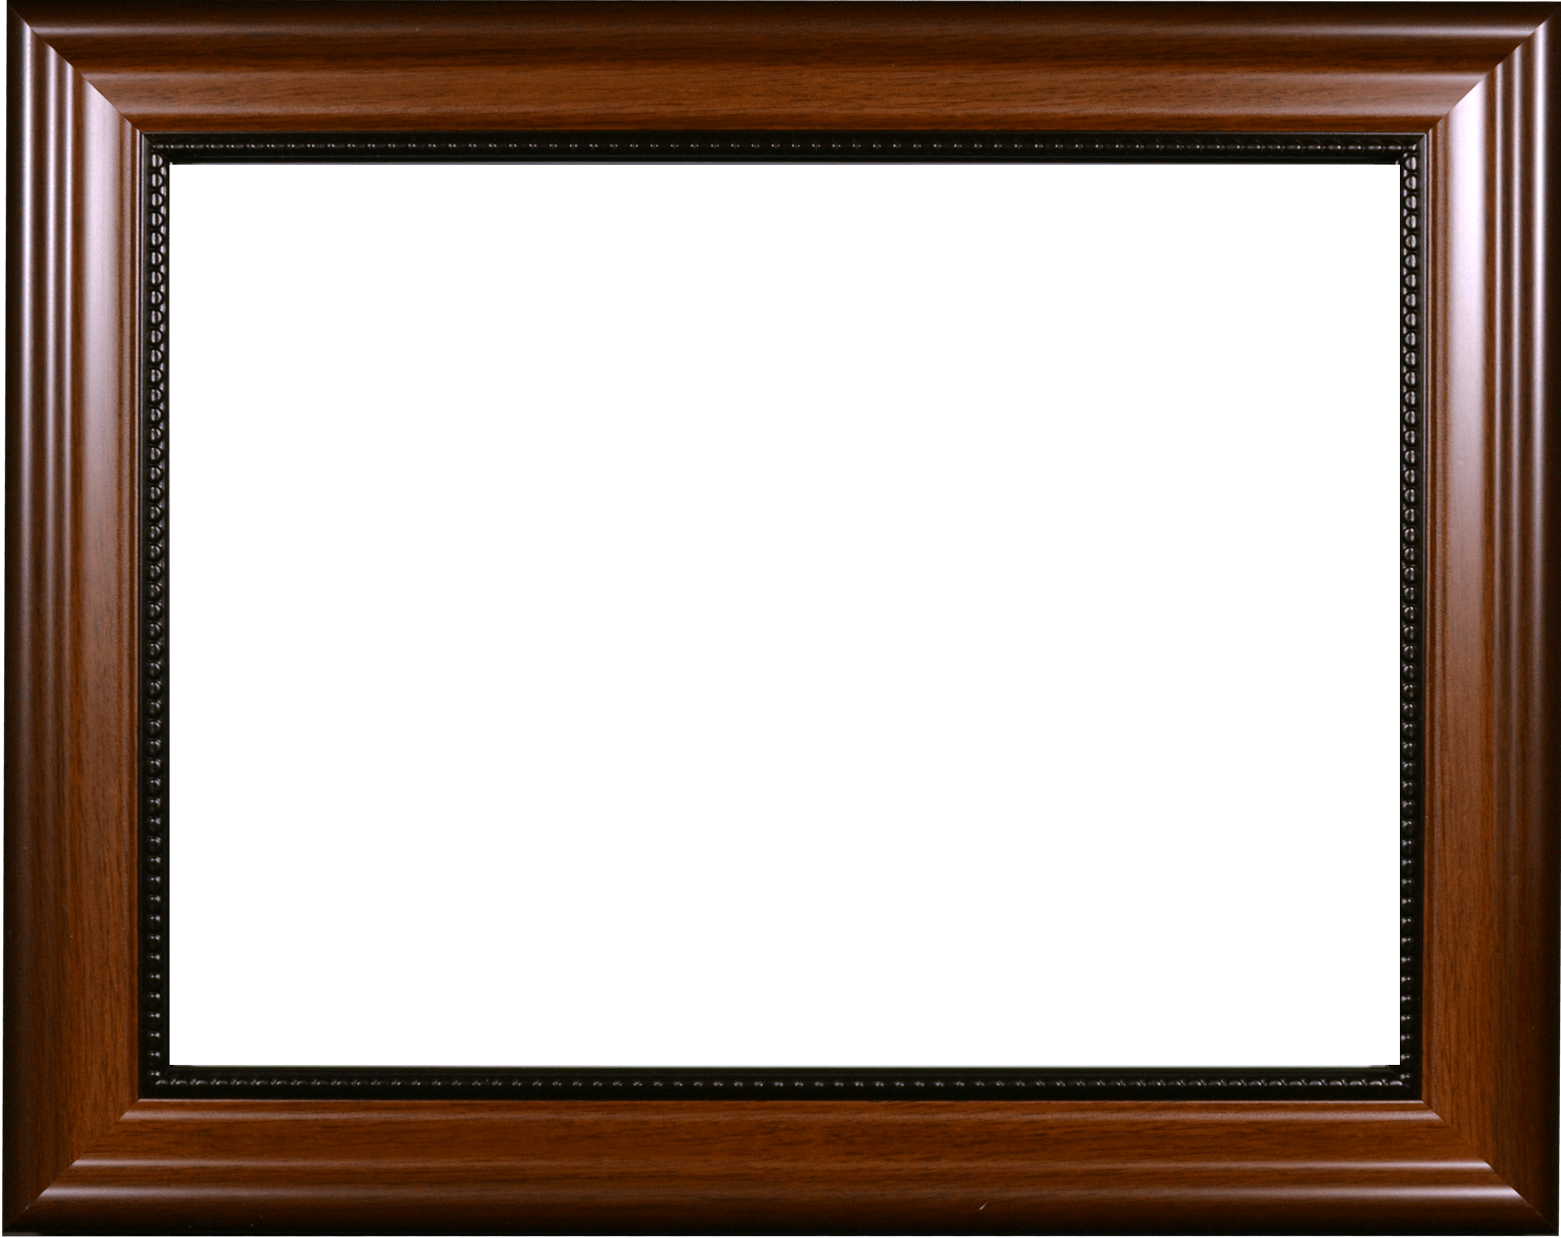 Walnut With Bead Certificate Frame Made At Wyman Frame - Vintage Frame (1561x1238), Png Download